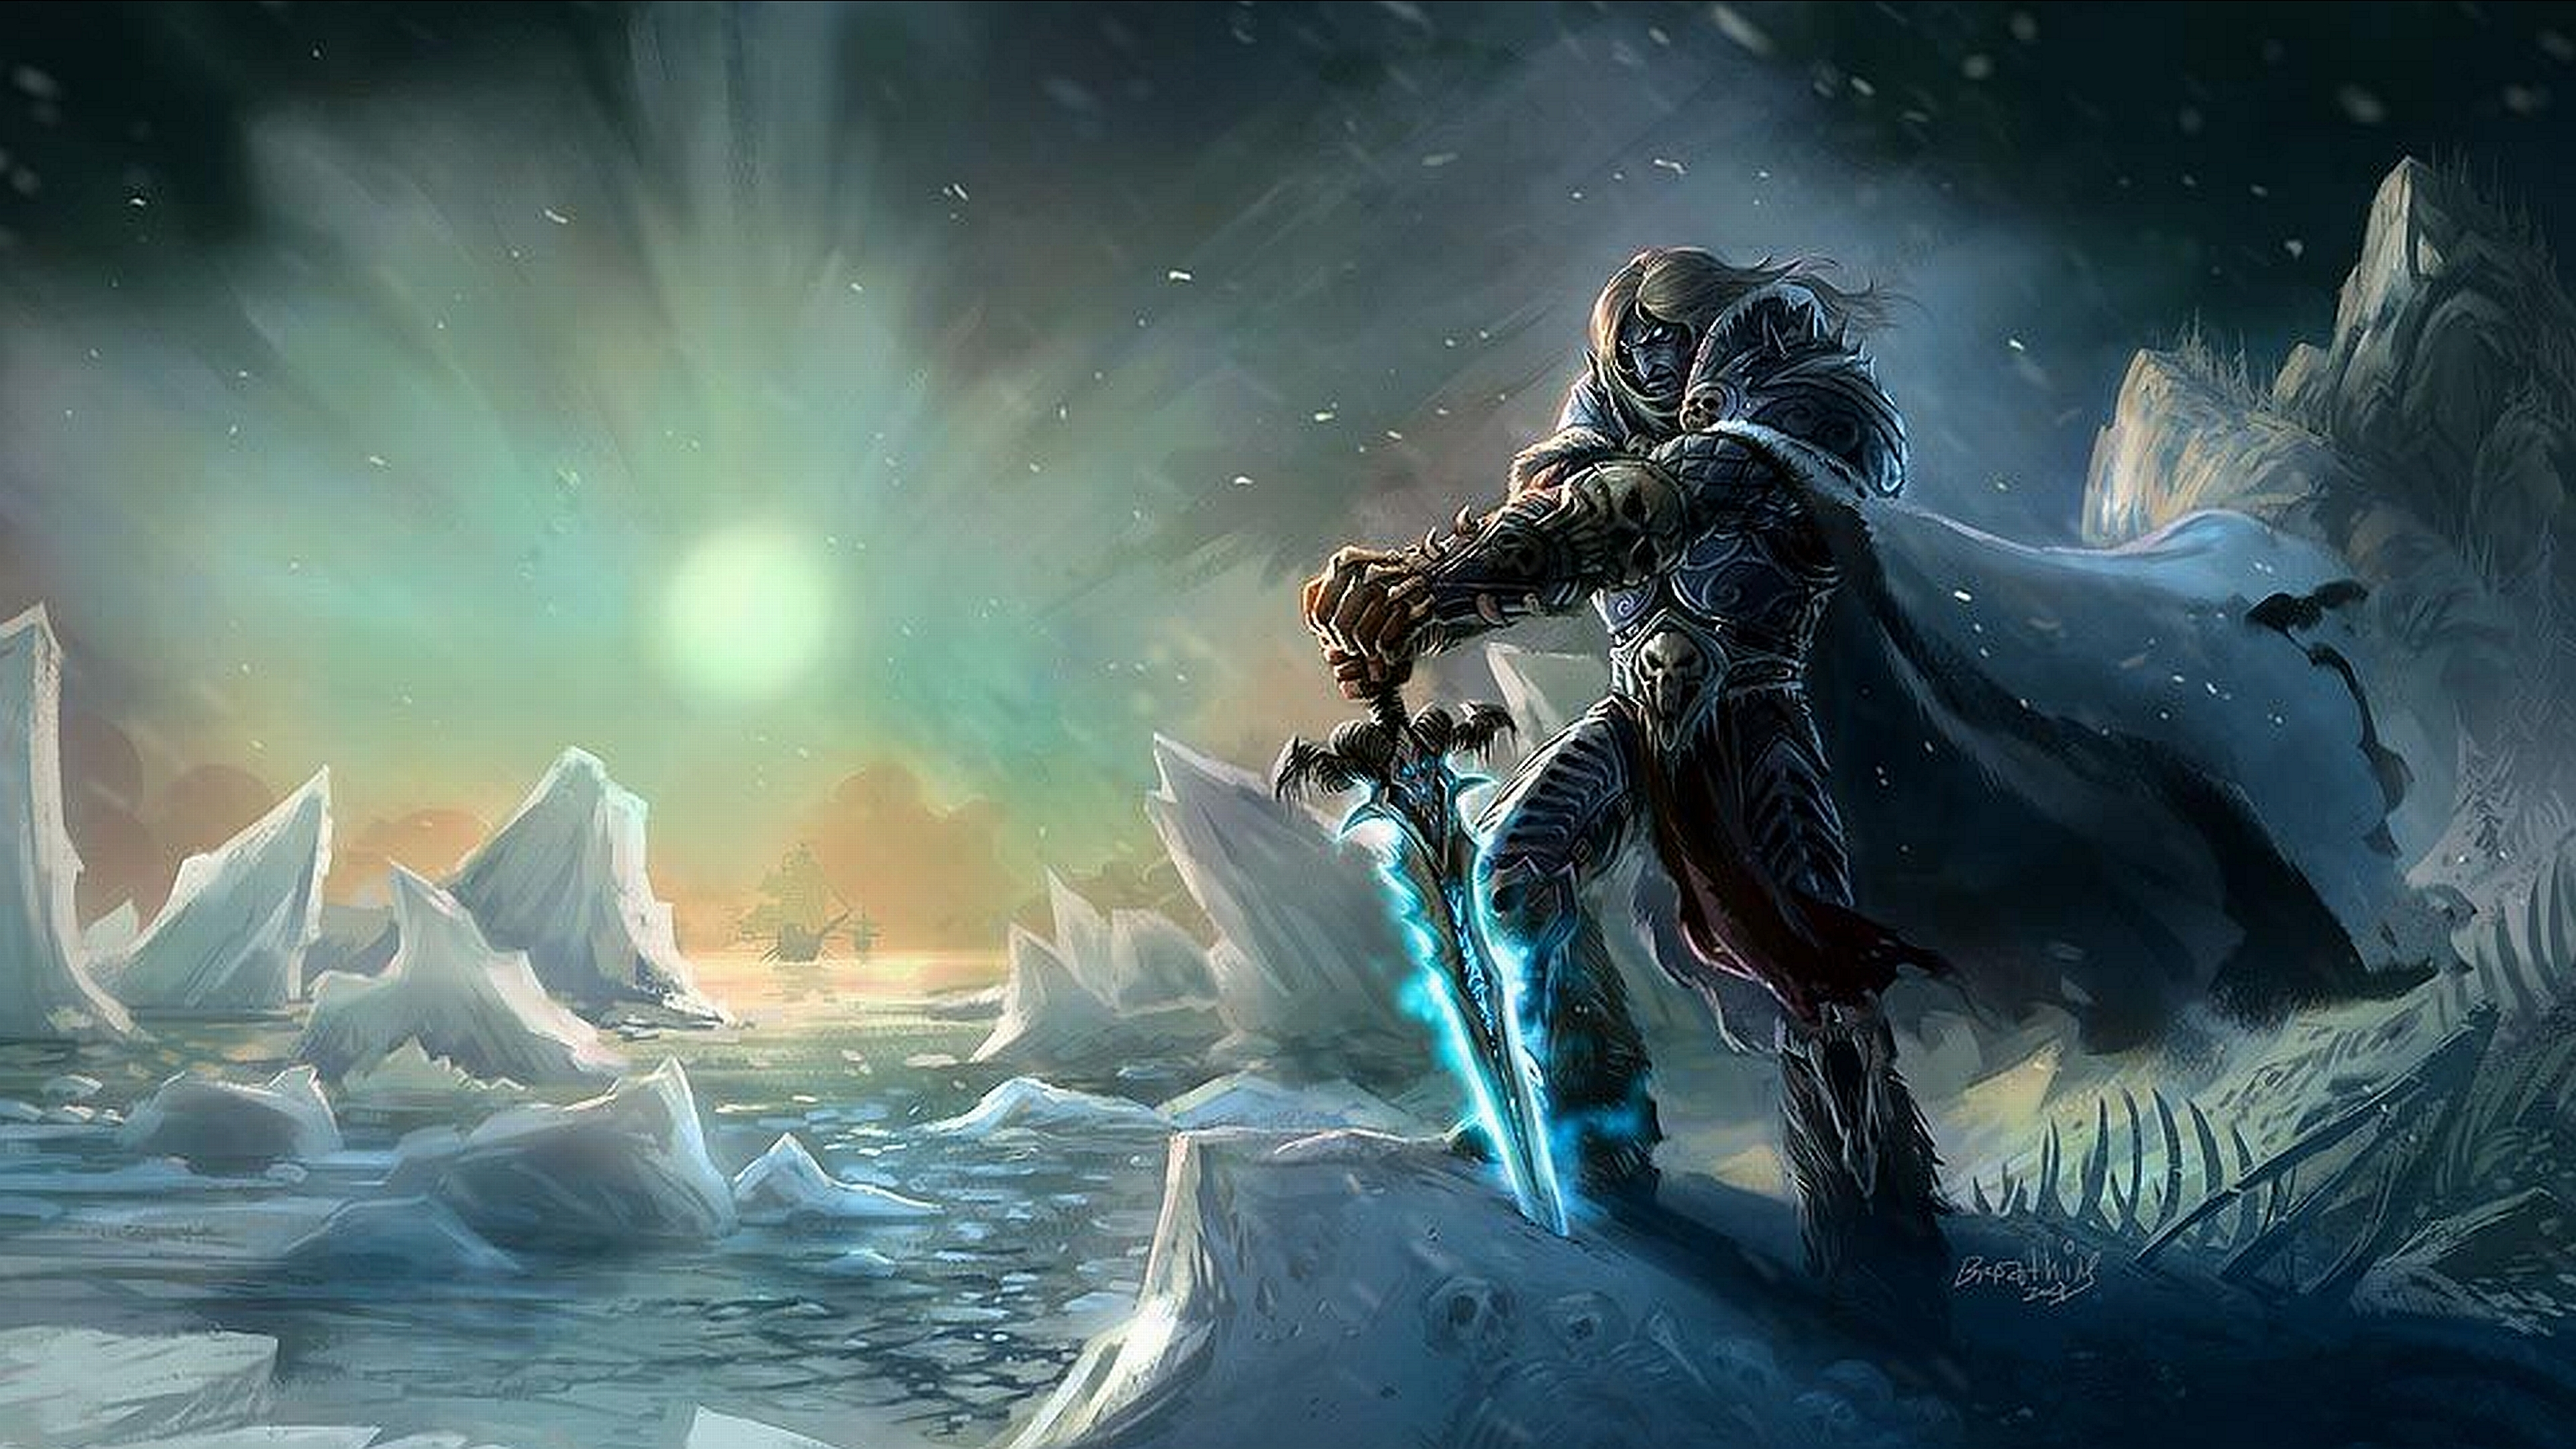 928 world of warcraft hd wallpapers   background images - wallpaper